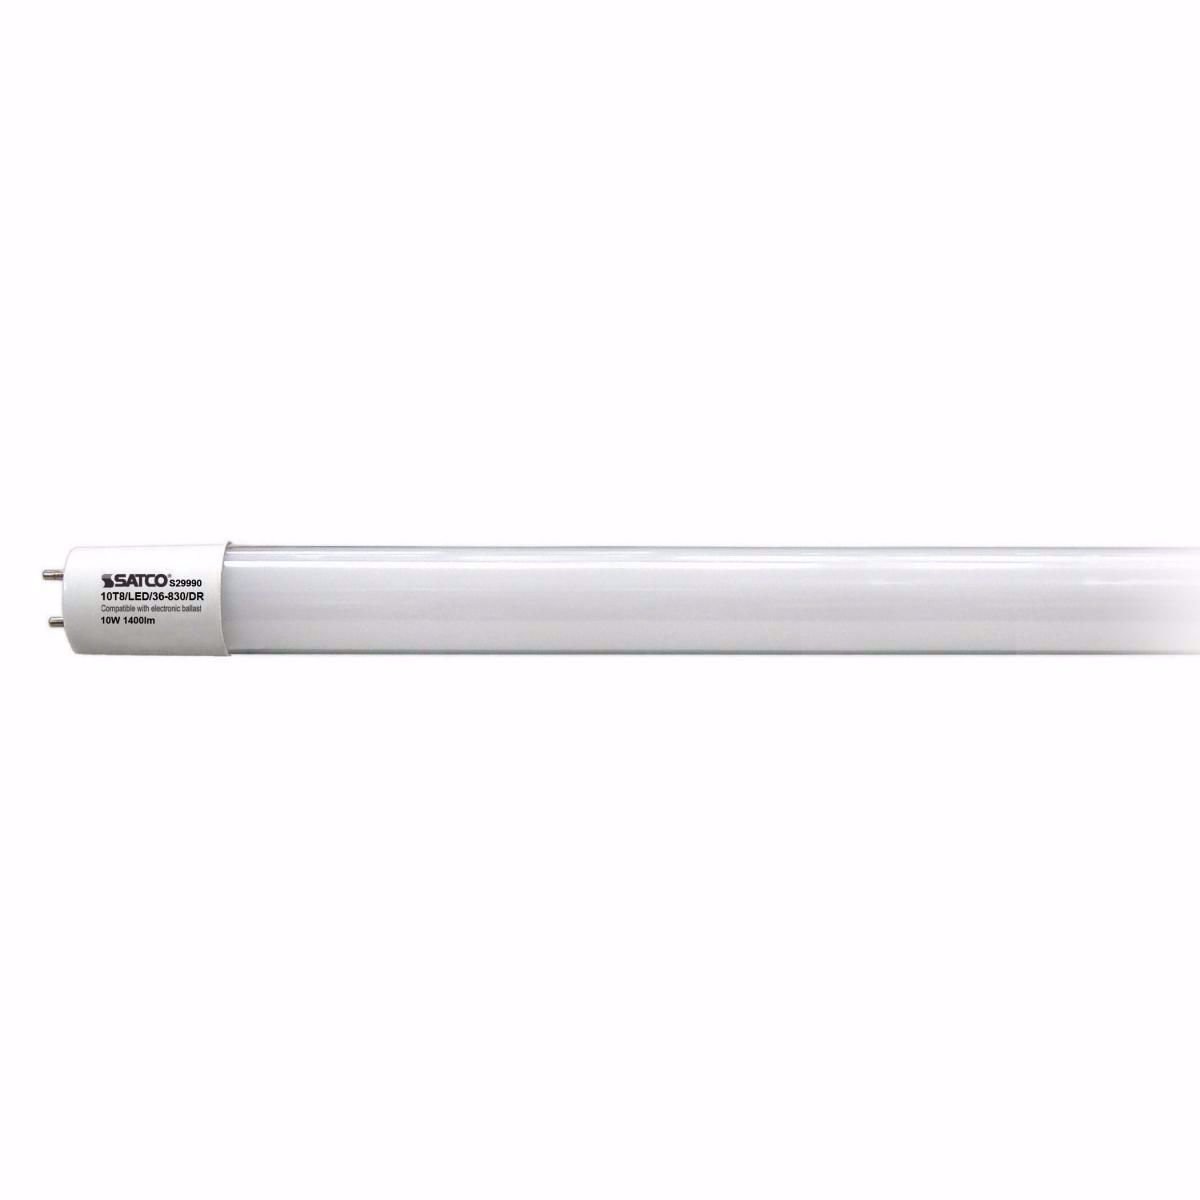 "Picture of SATCO S 29990 10T8/LED/36-830/DR 36"" LED Light Bulb"